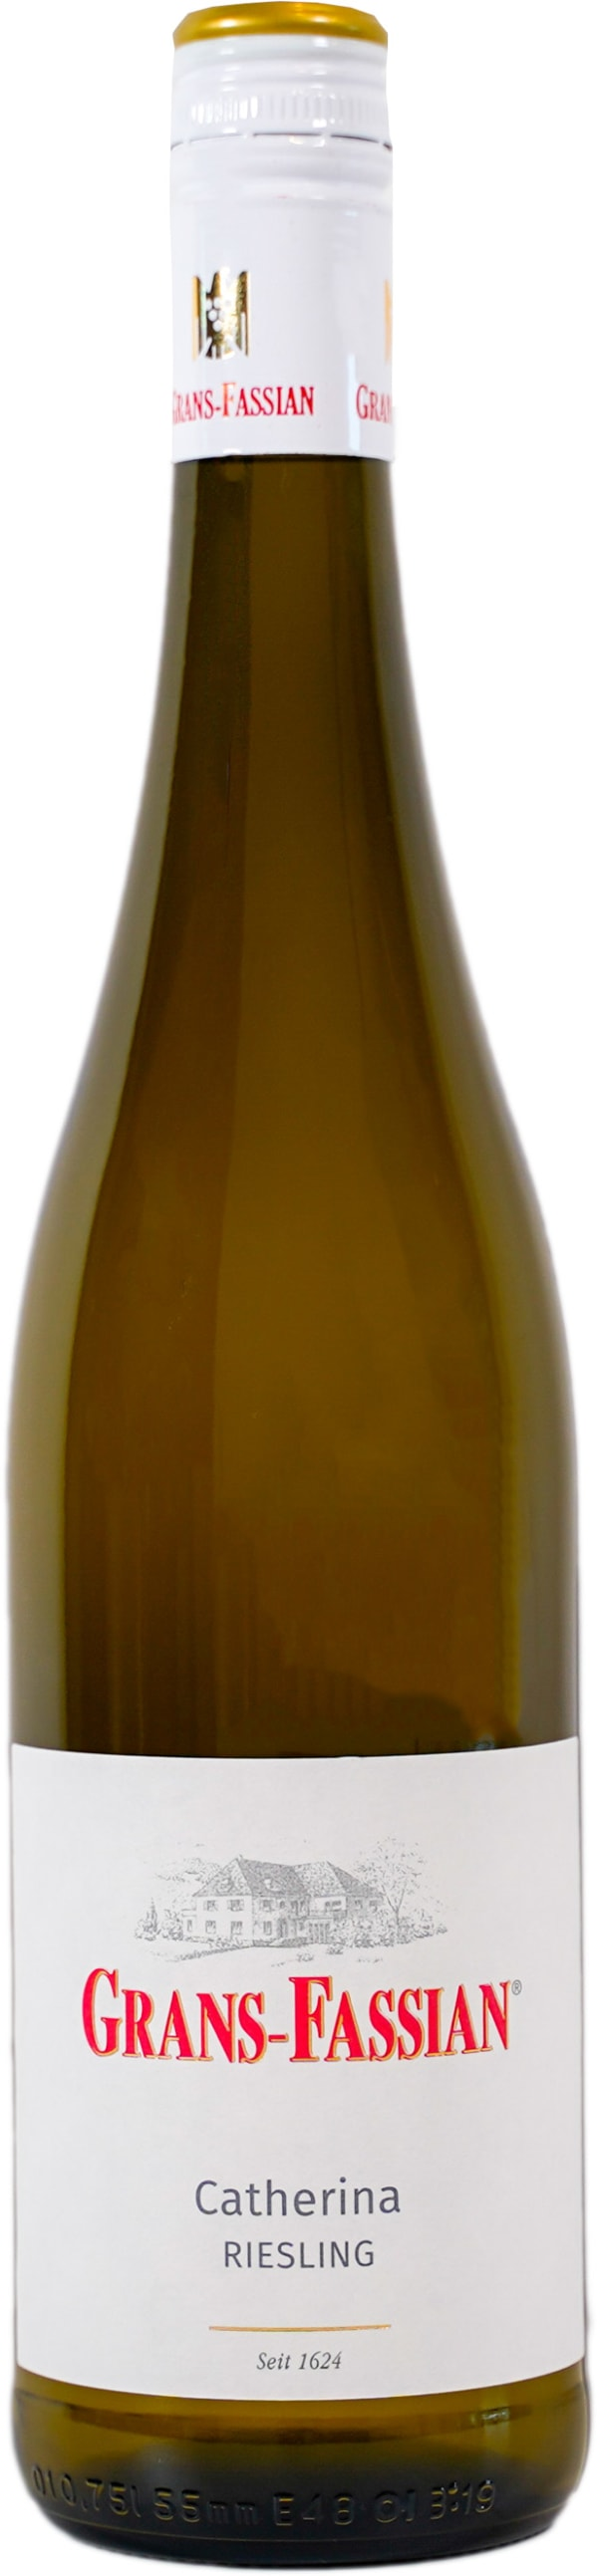 Grans-Fassian Catherina Riesling 2019